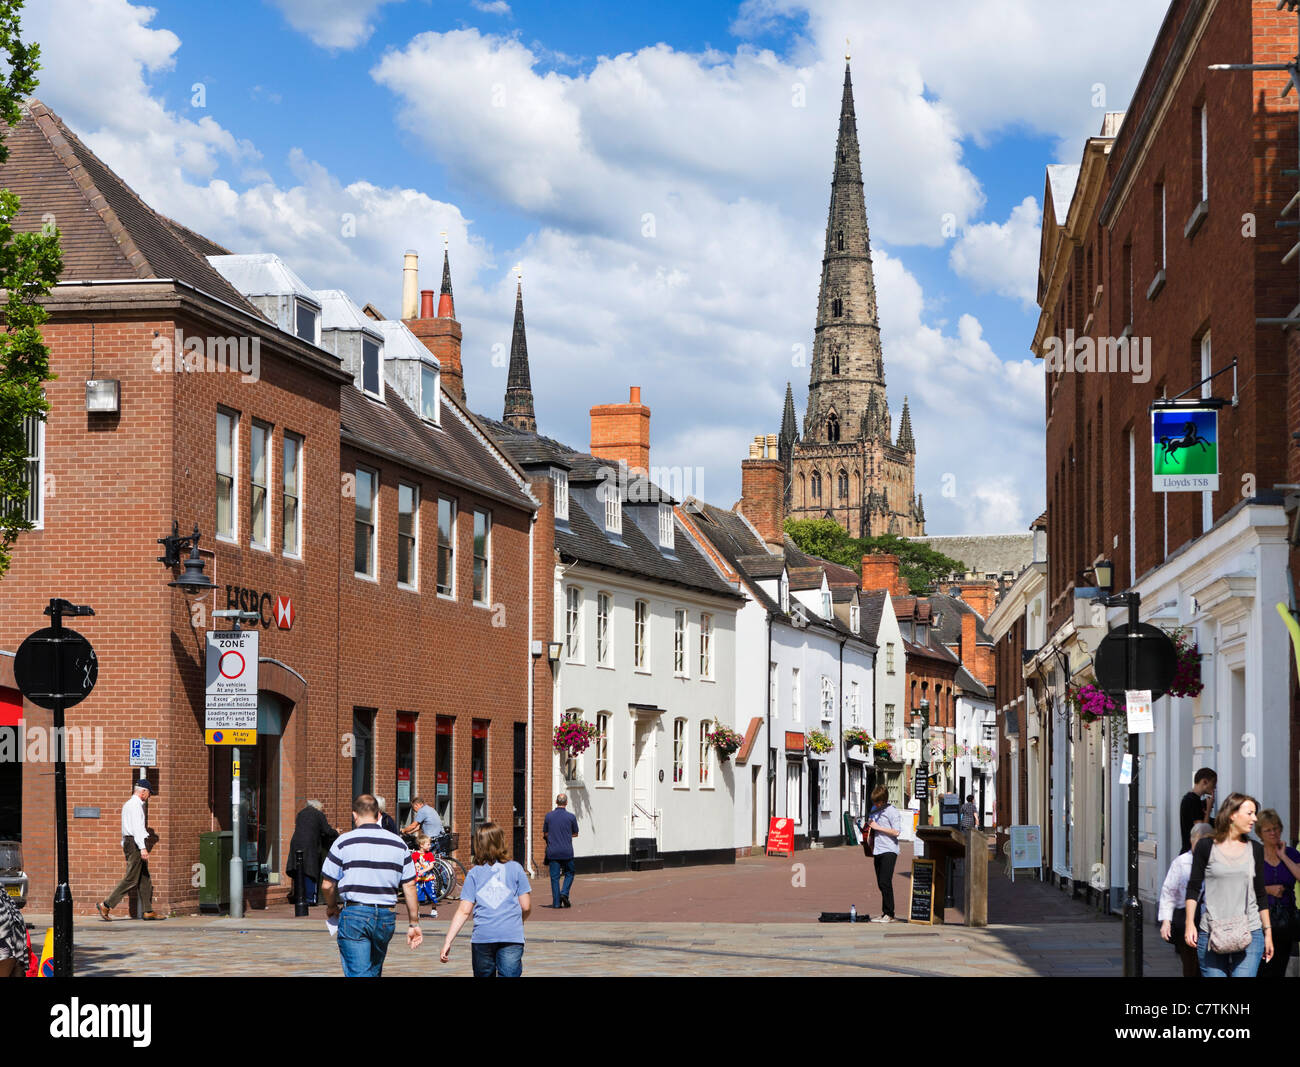 Spire of Lichfield Cathedral from Bakers Lane in the city centre, Lichfield, Staffordshire, England, UK - Stock Image